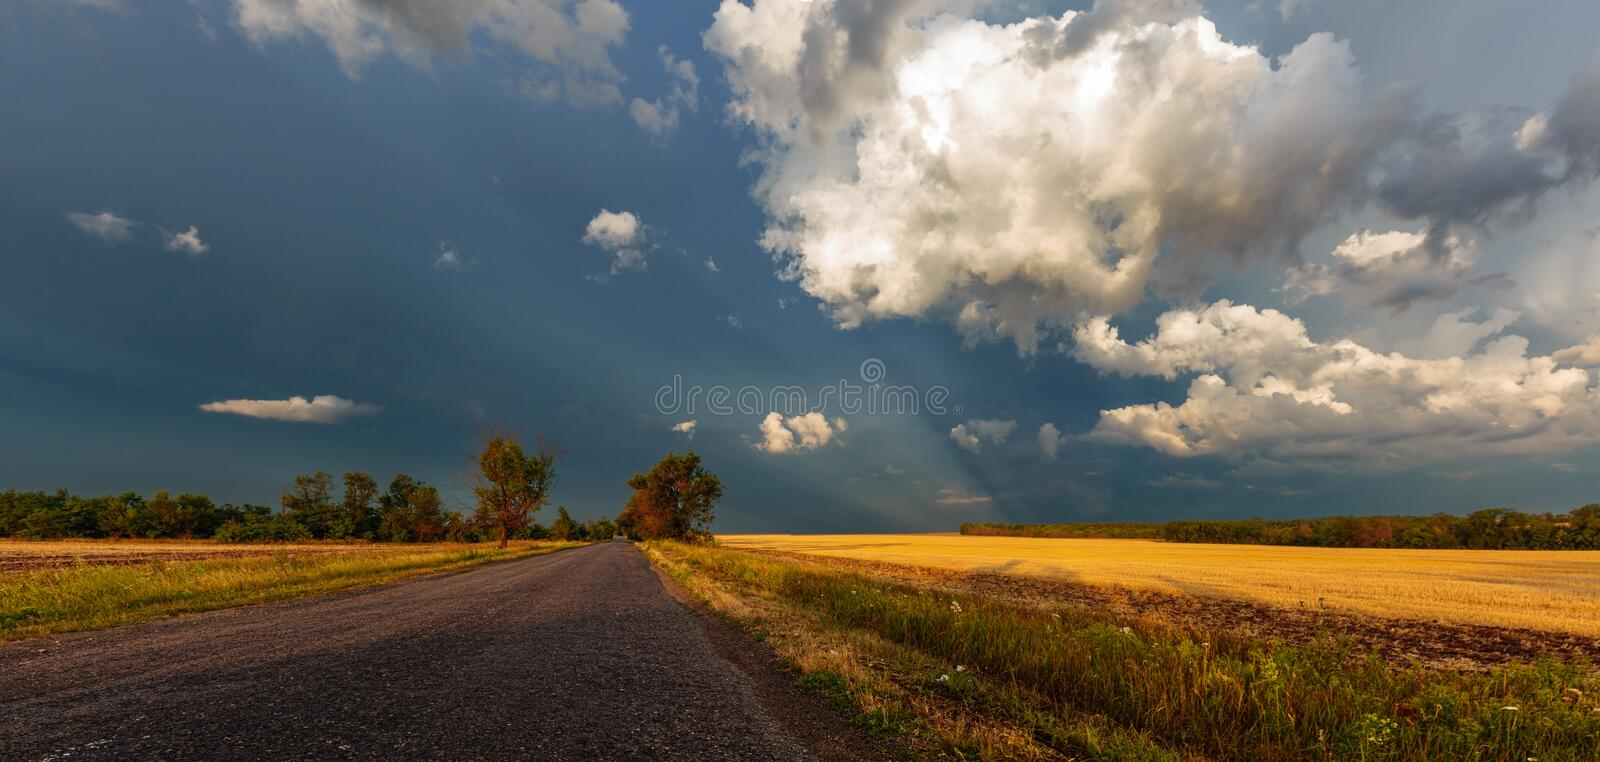 A Thunderstorm clouds above the road royalty free stock photos